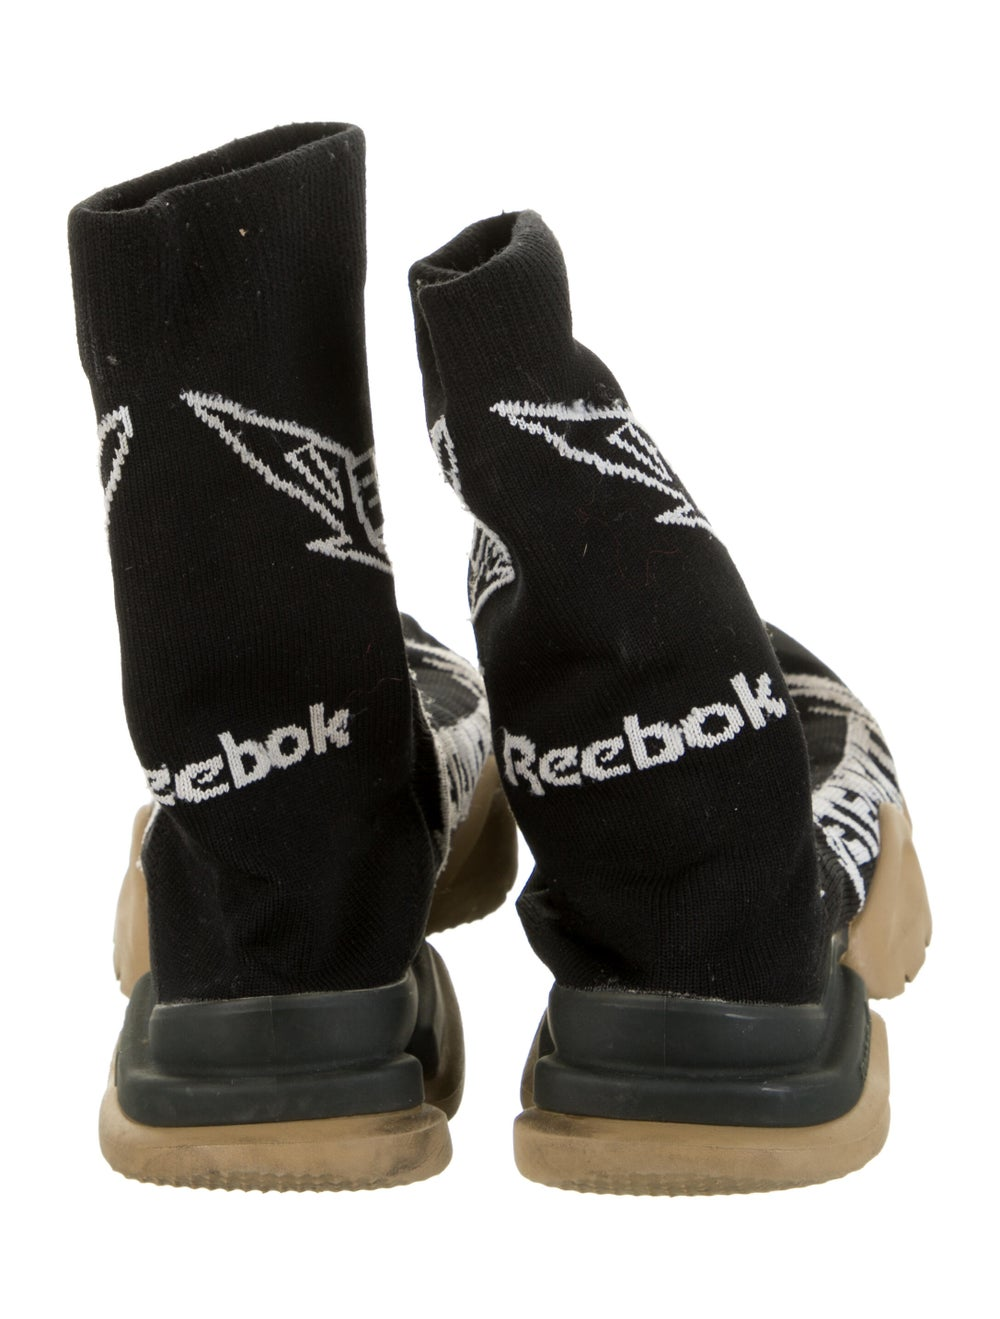 Vetements x Reebok Knit Sock Sneakers Black - image 4